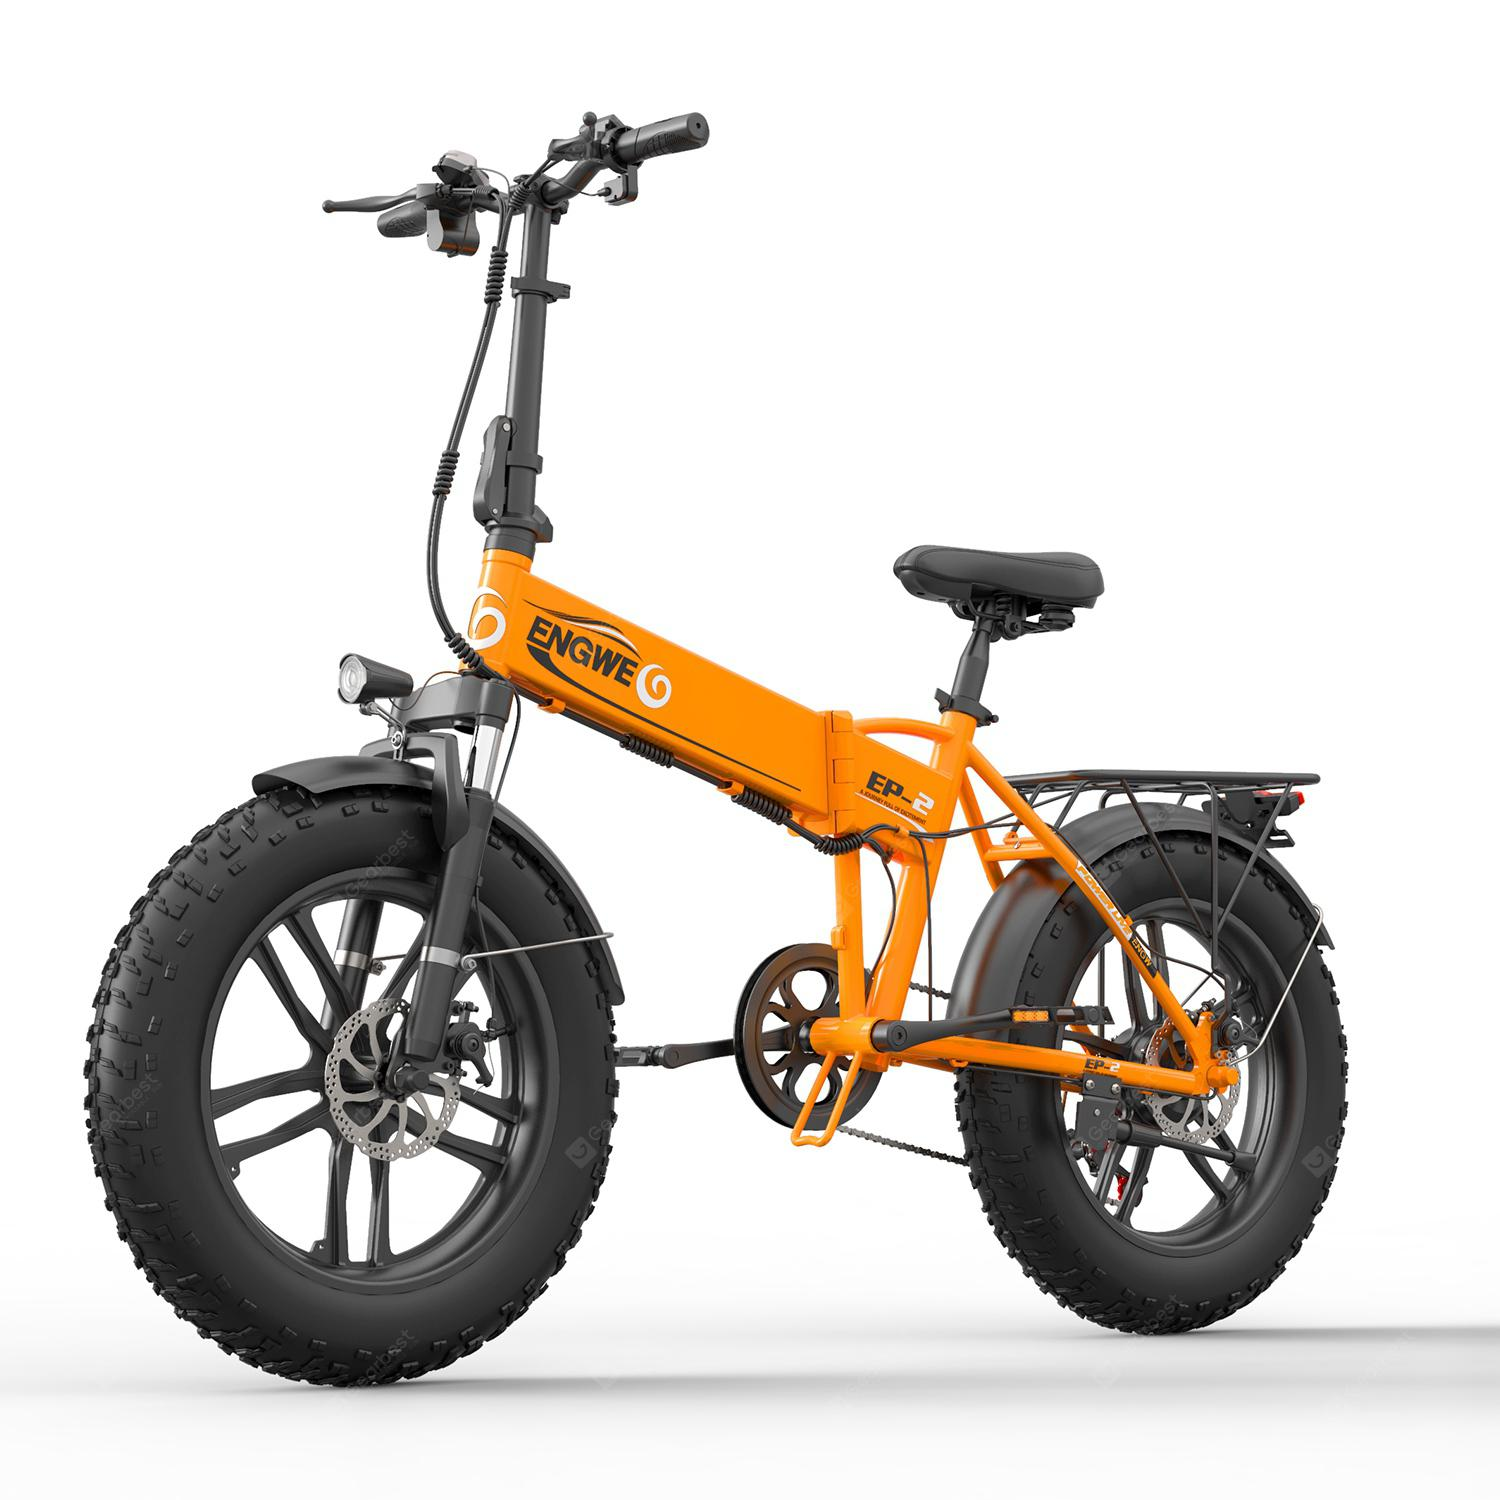 ENGWE EP-2 500W Folding Fat Tire Electric Bike with 48V 10Ah Lithium-ion Battery - Orange China 3%commissions